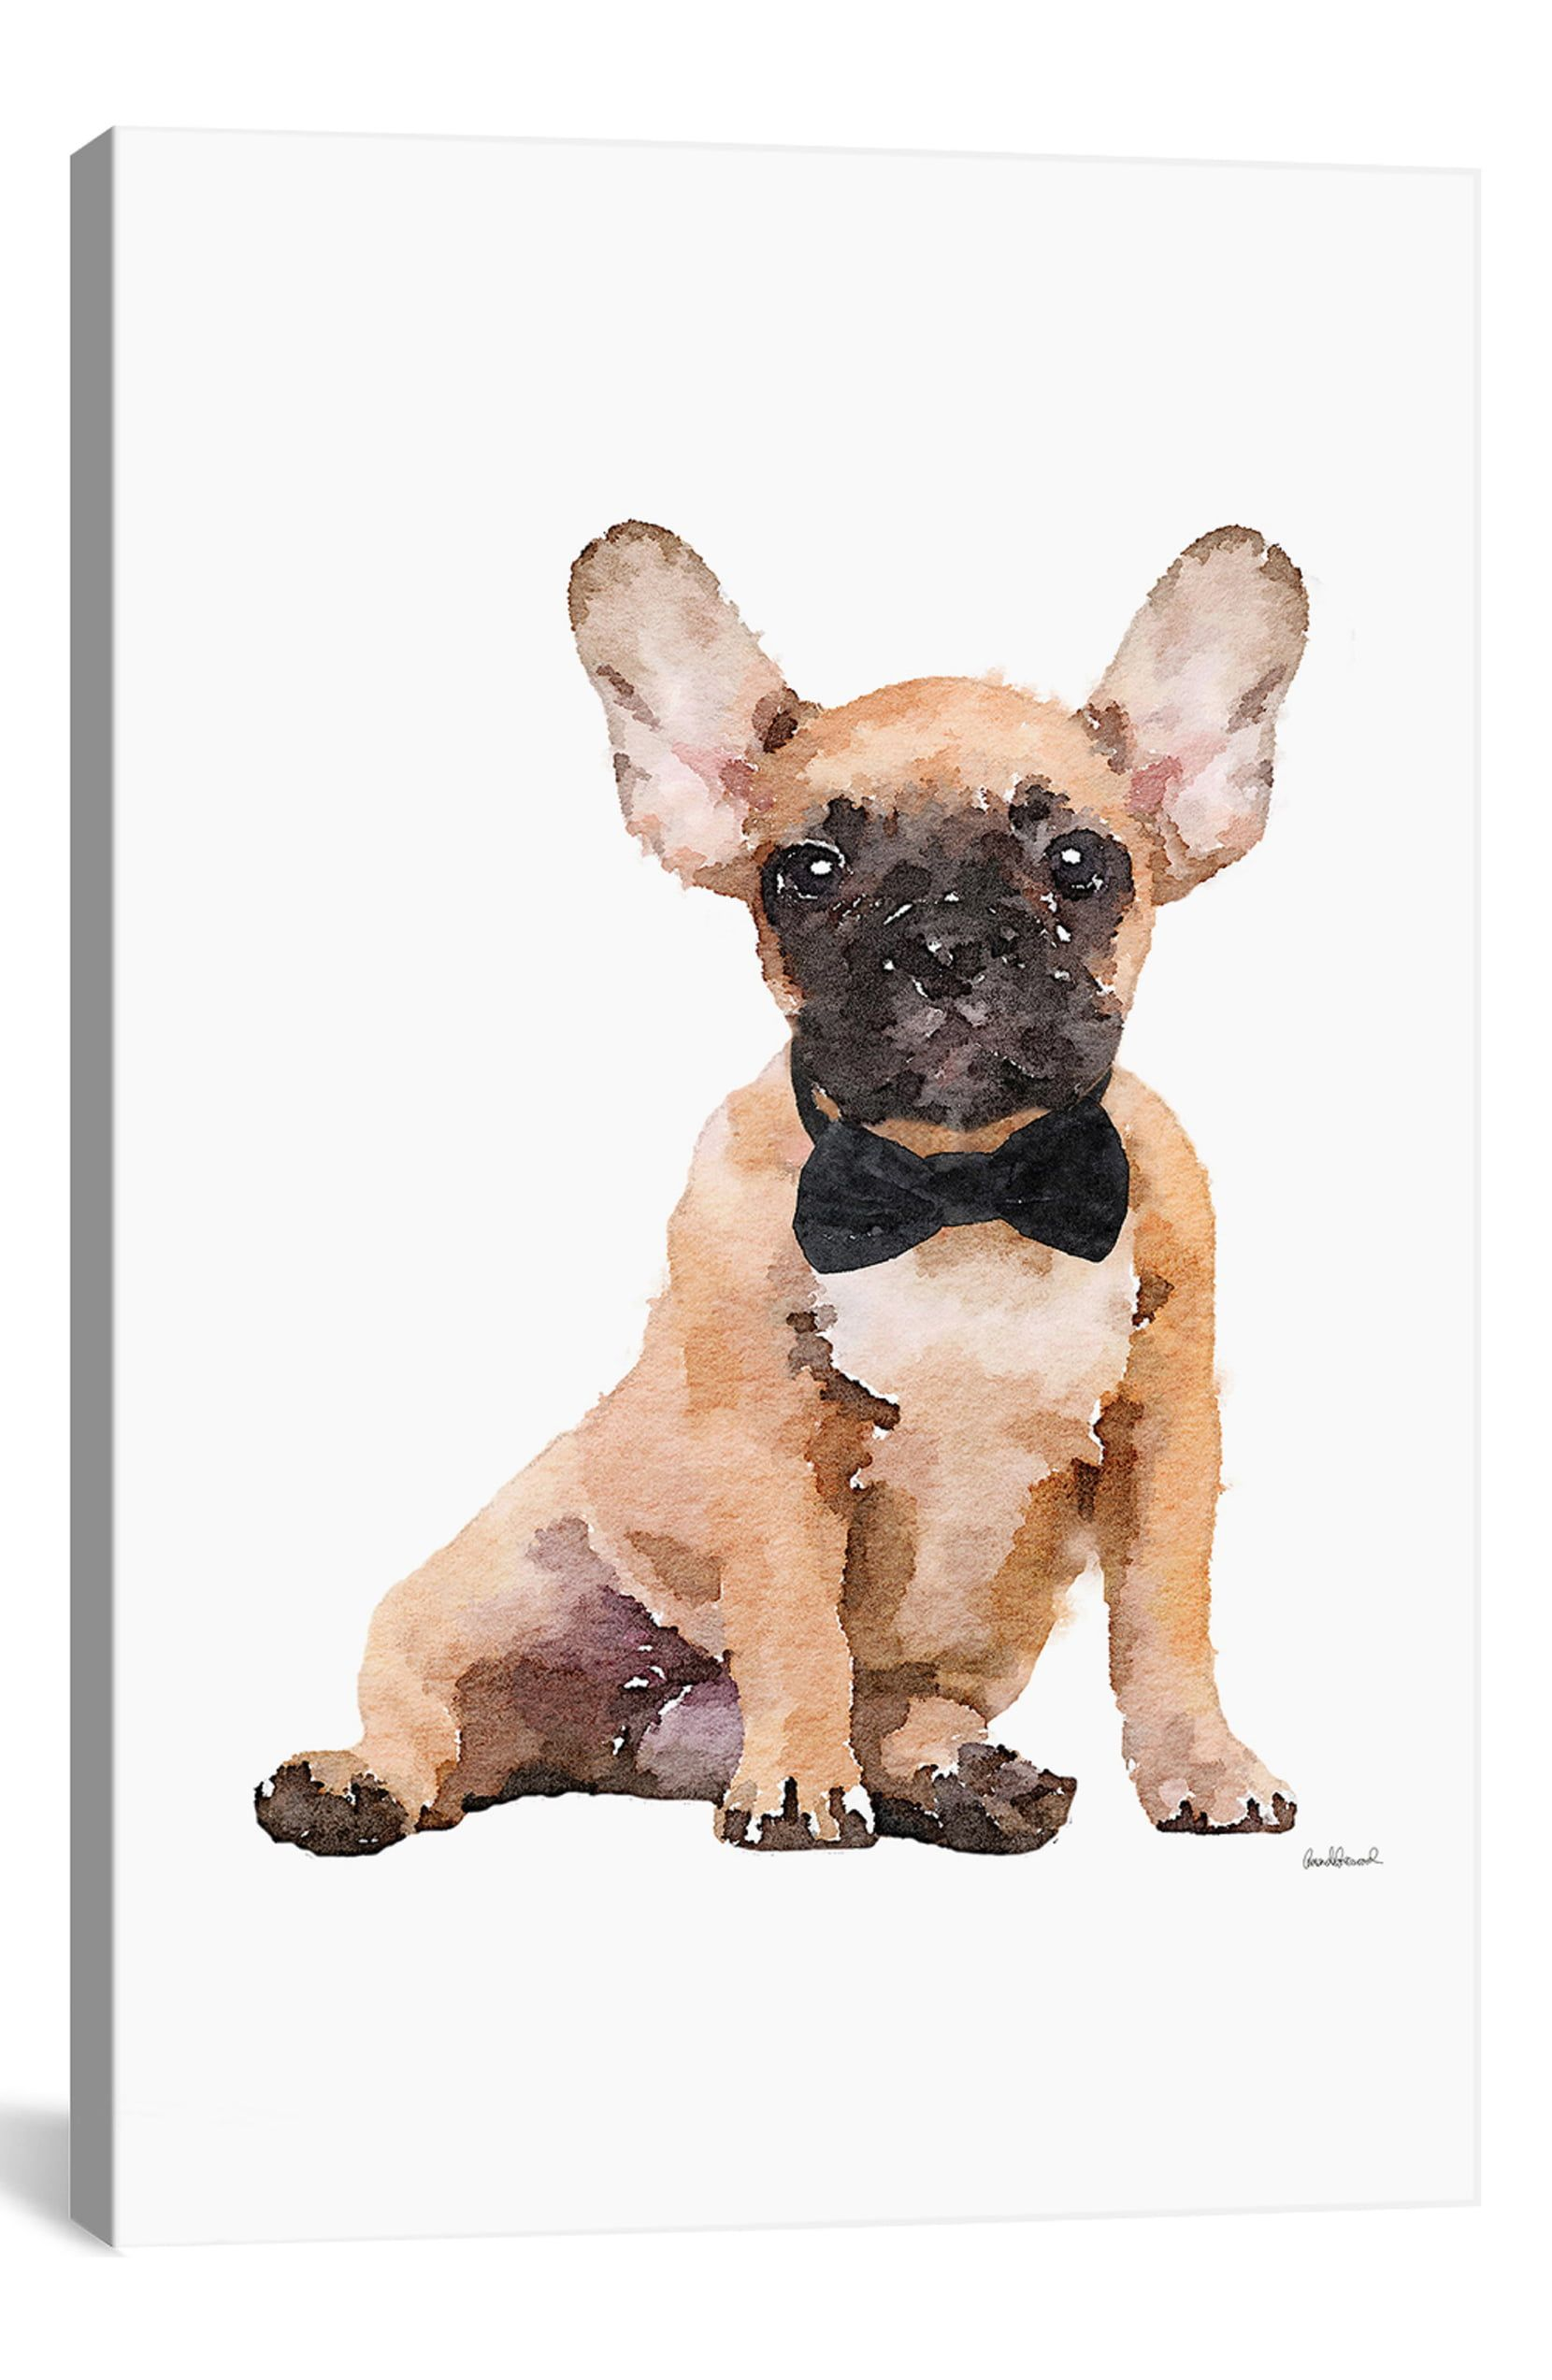 iCanvas Fawn Frenchie by Amanda Greenwood Giclée Print